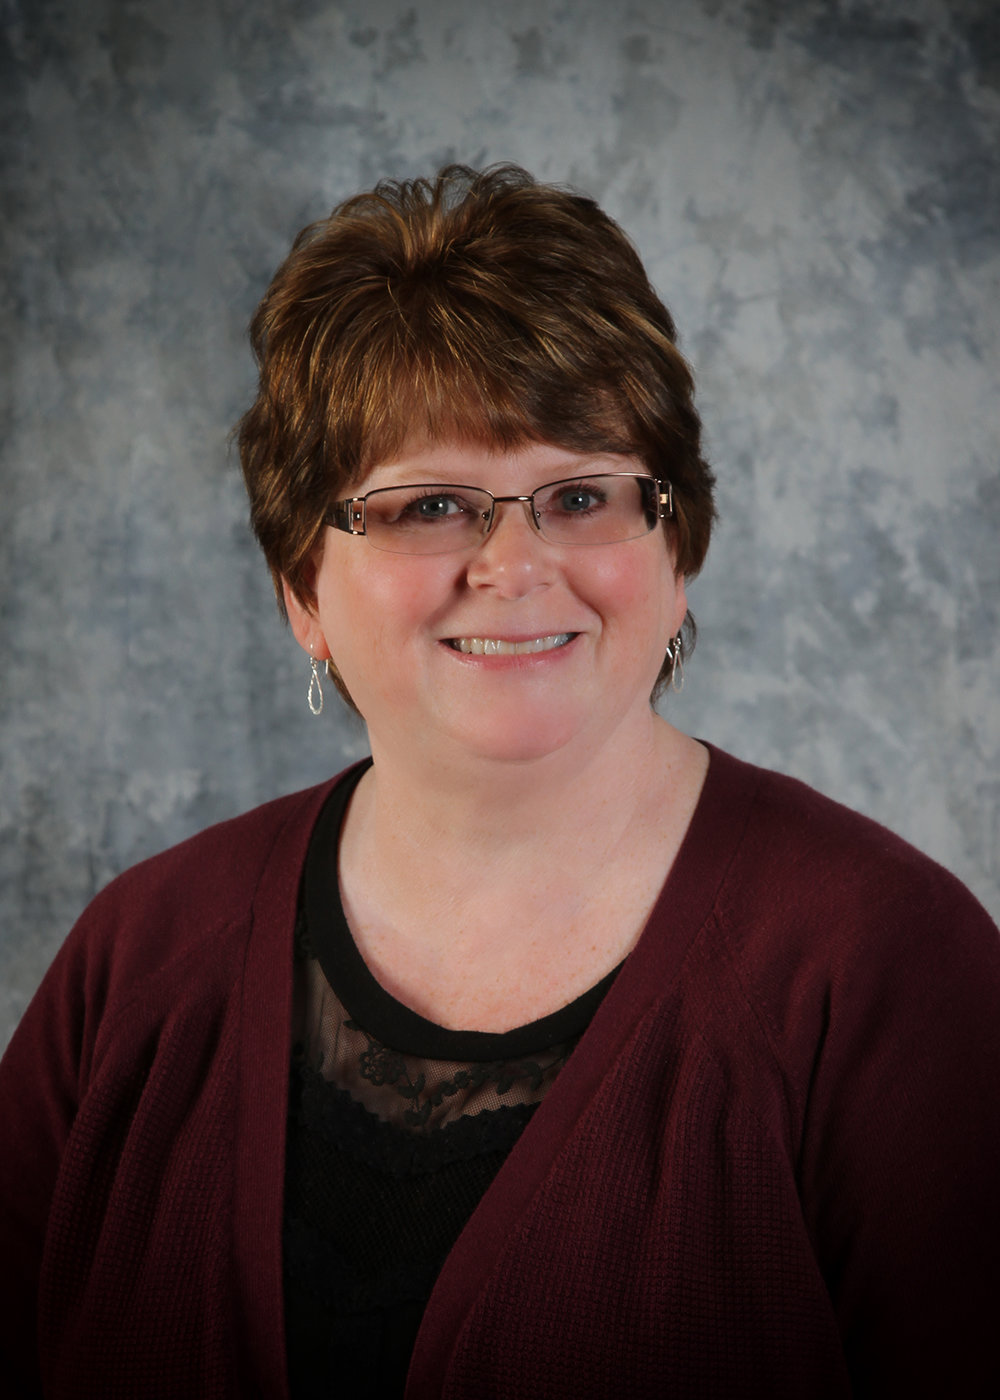 Tracy Nelson - At Large Representative                               (715)267-6205                  council01@greenwoodwi.com                          First Elected: 2014                    Current Term: 2018 - 2020